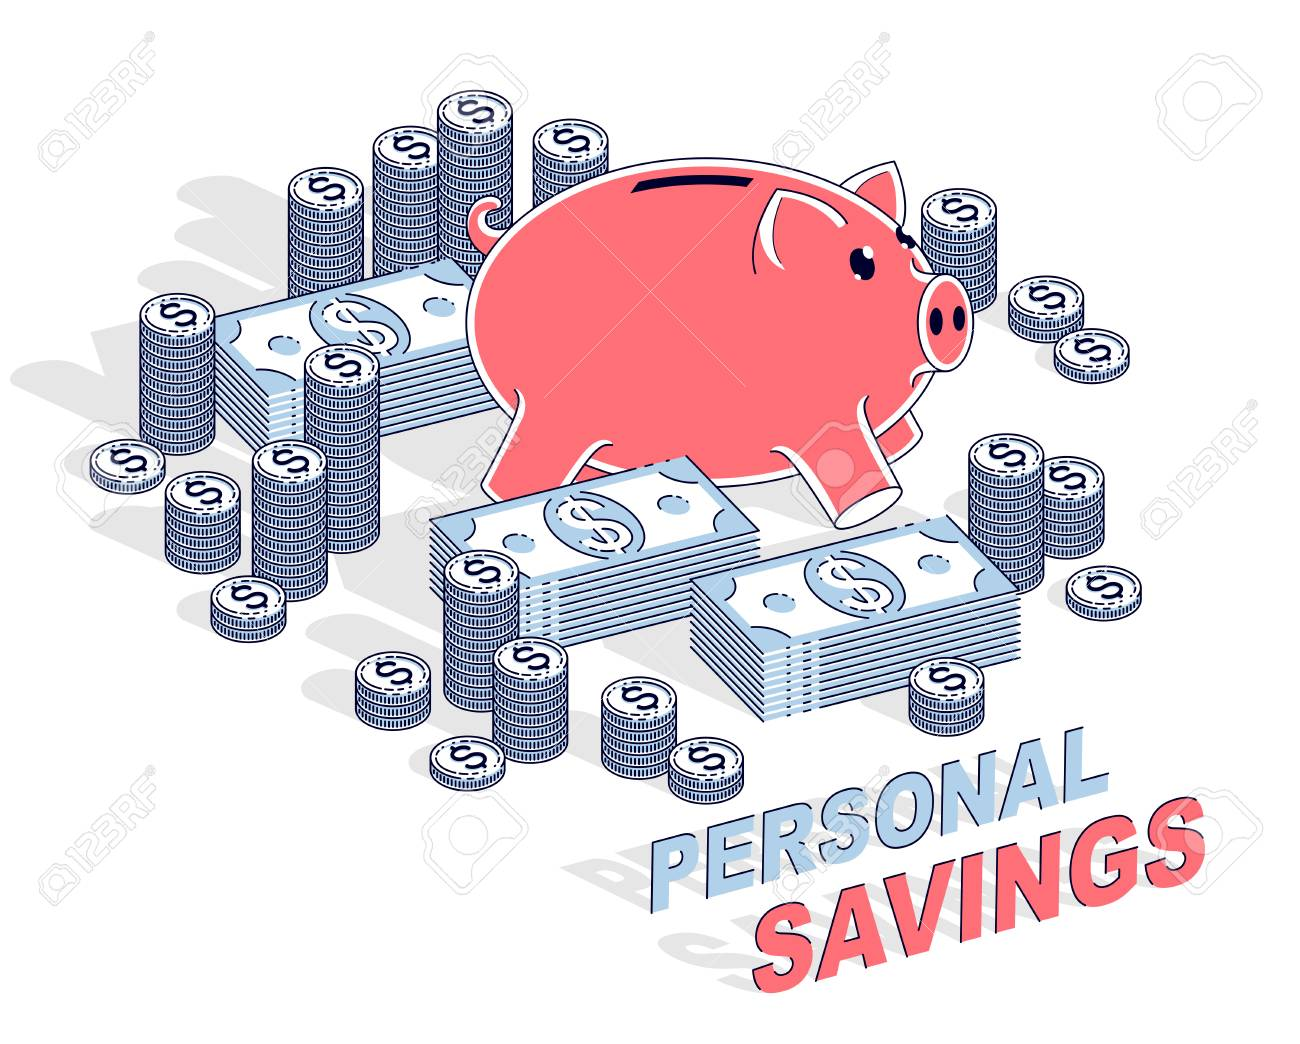 Design Bank Wit.Personal Savings Concept Piggy Bank With Dollar Stacks And Cent